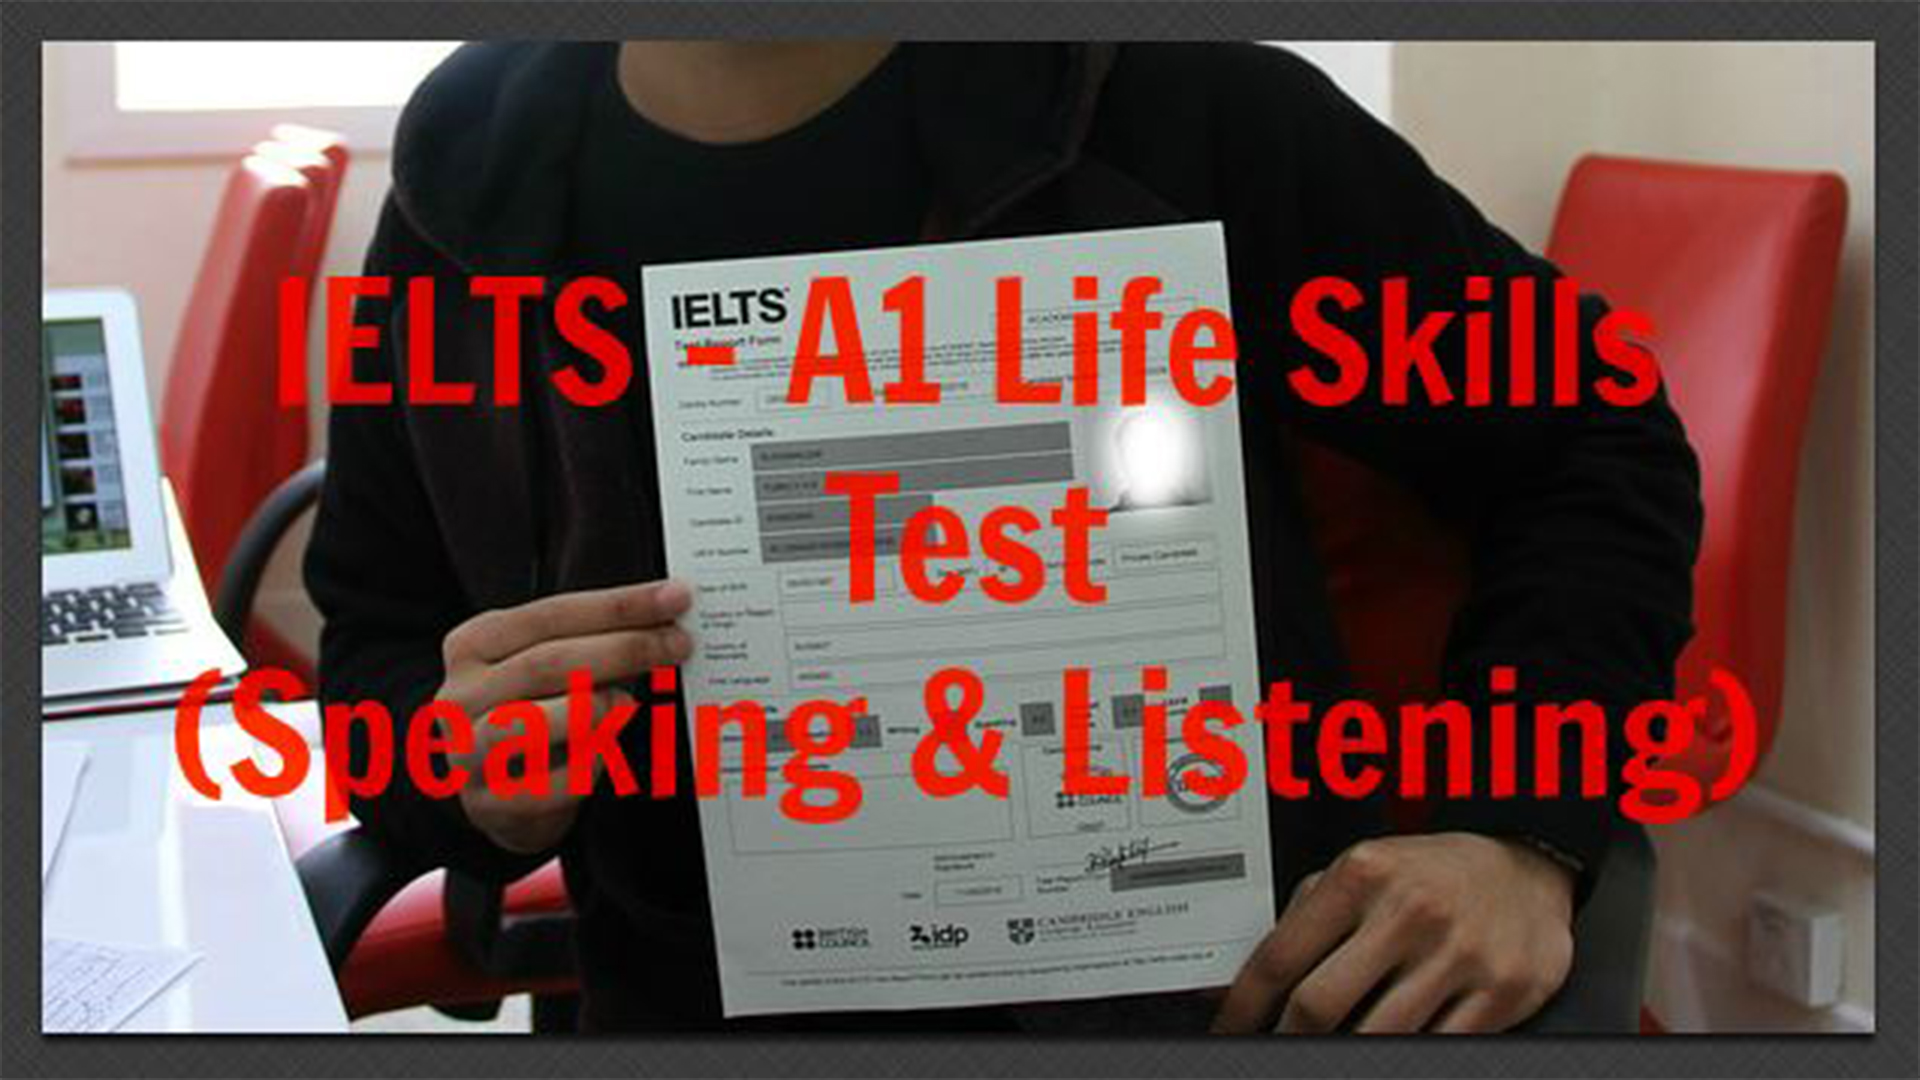 IELTS – A1 Life Skills Test (Speaking & Listening)